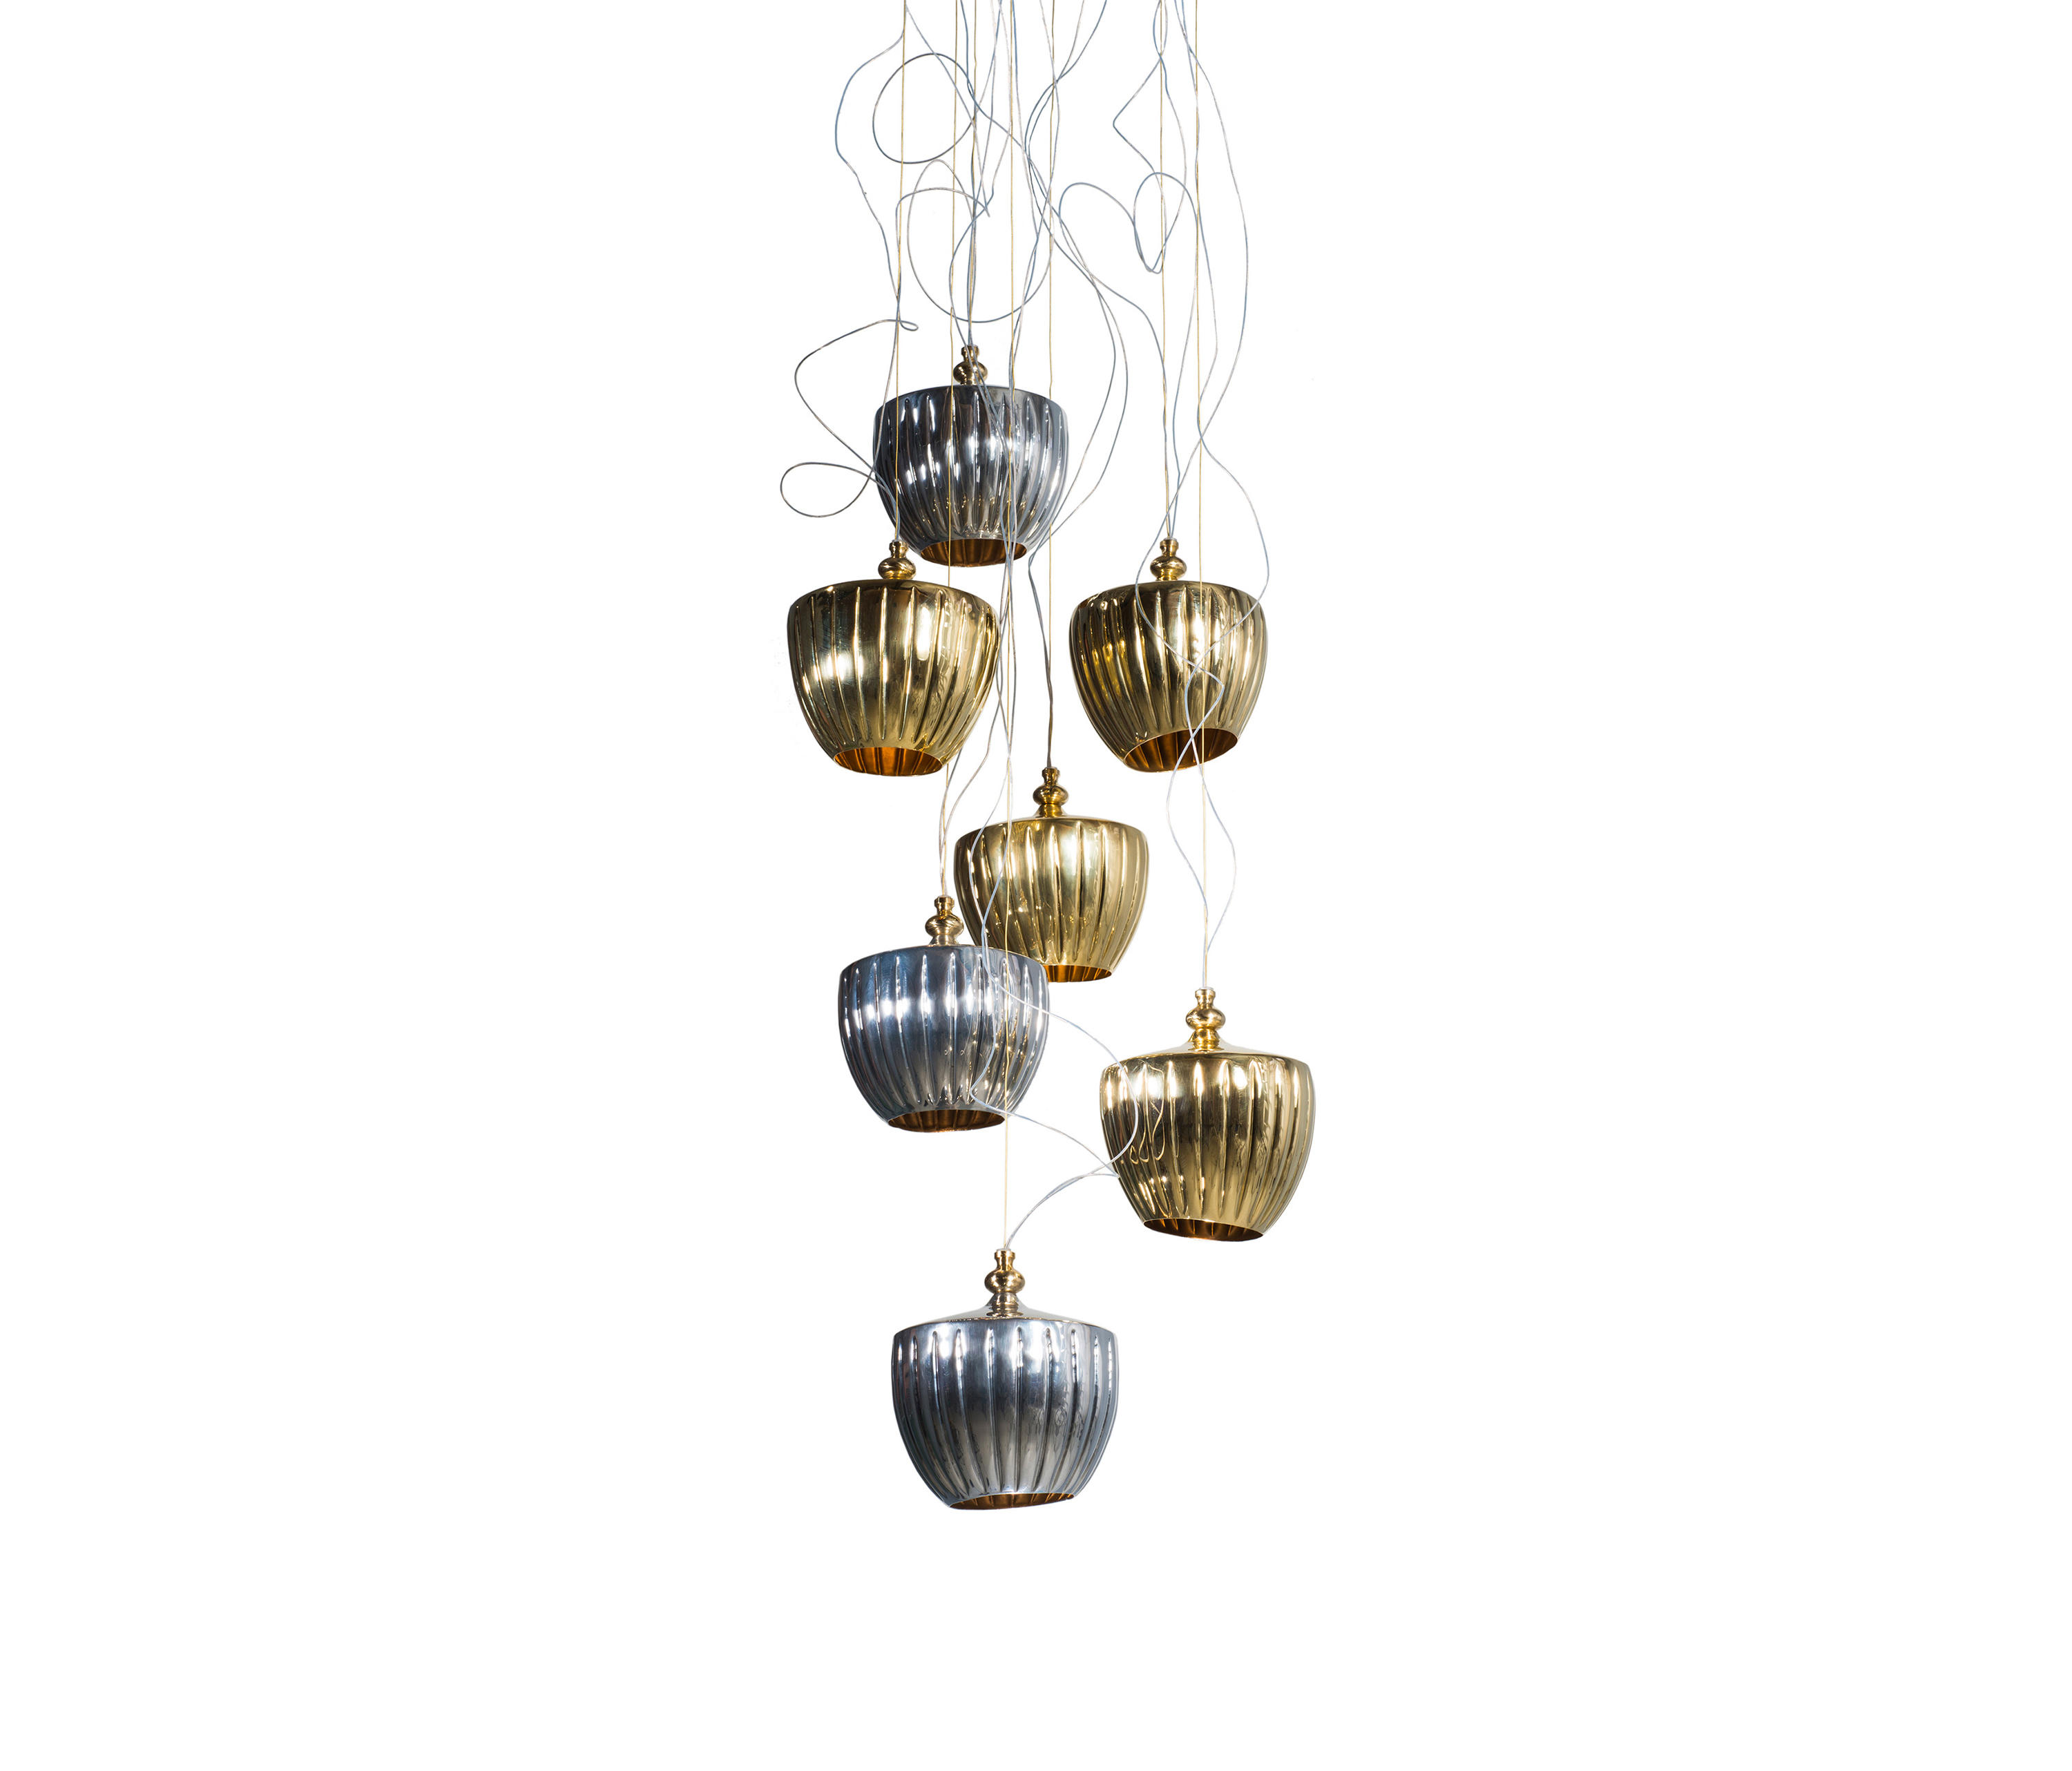 Pod cascade chandelier general lighting from martin huxford studio pod cascade chandelier by martin huxford studio general lighting arubaitofo Images